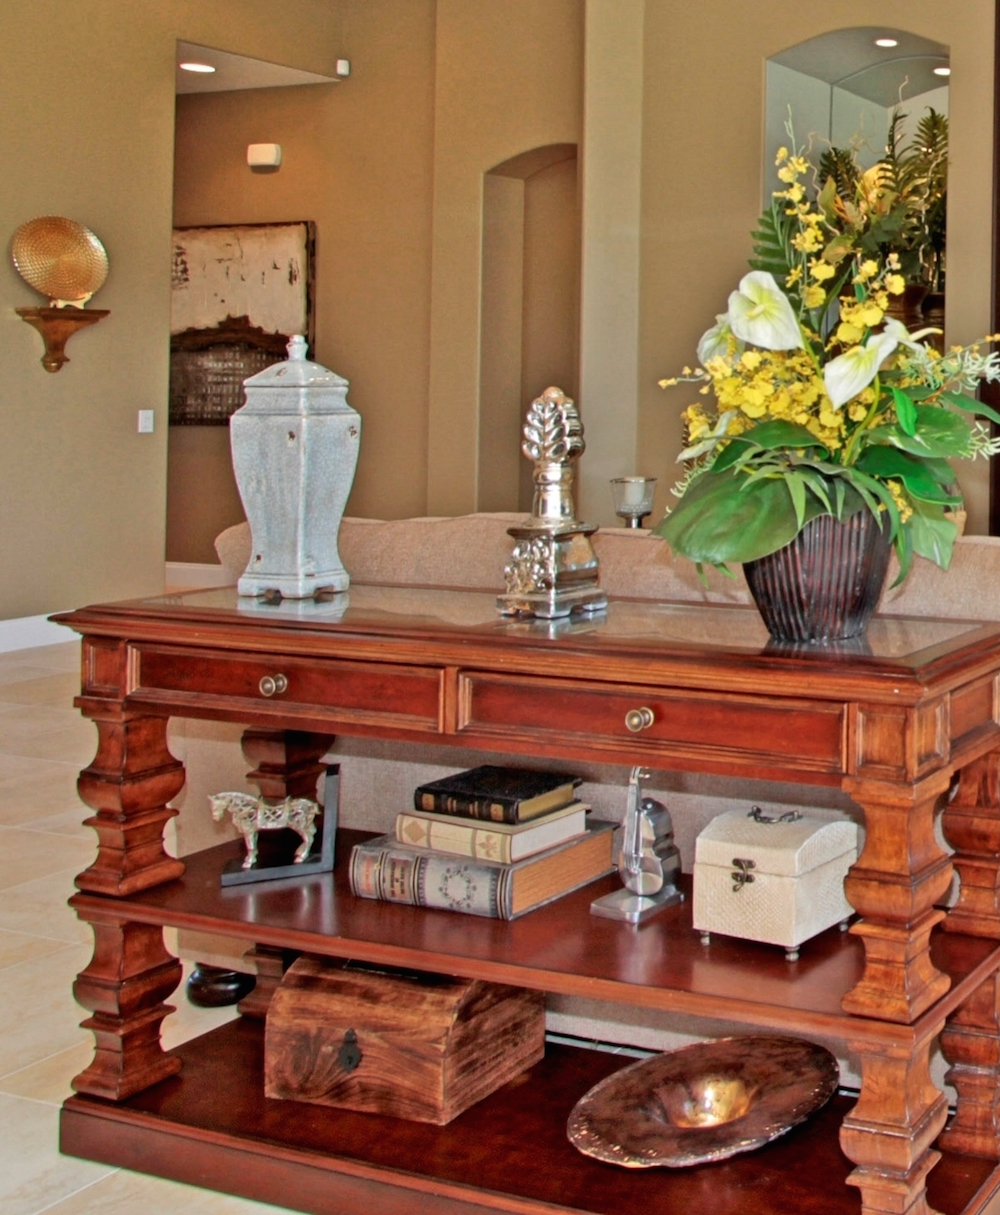 Michele buchamer north vancouver real estate entry console entry console table details geotapseo Images